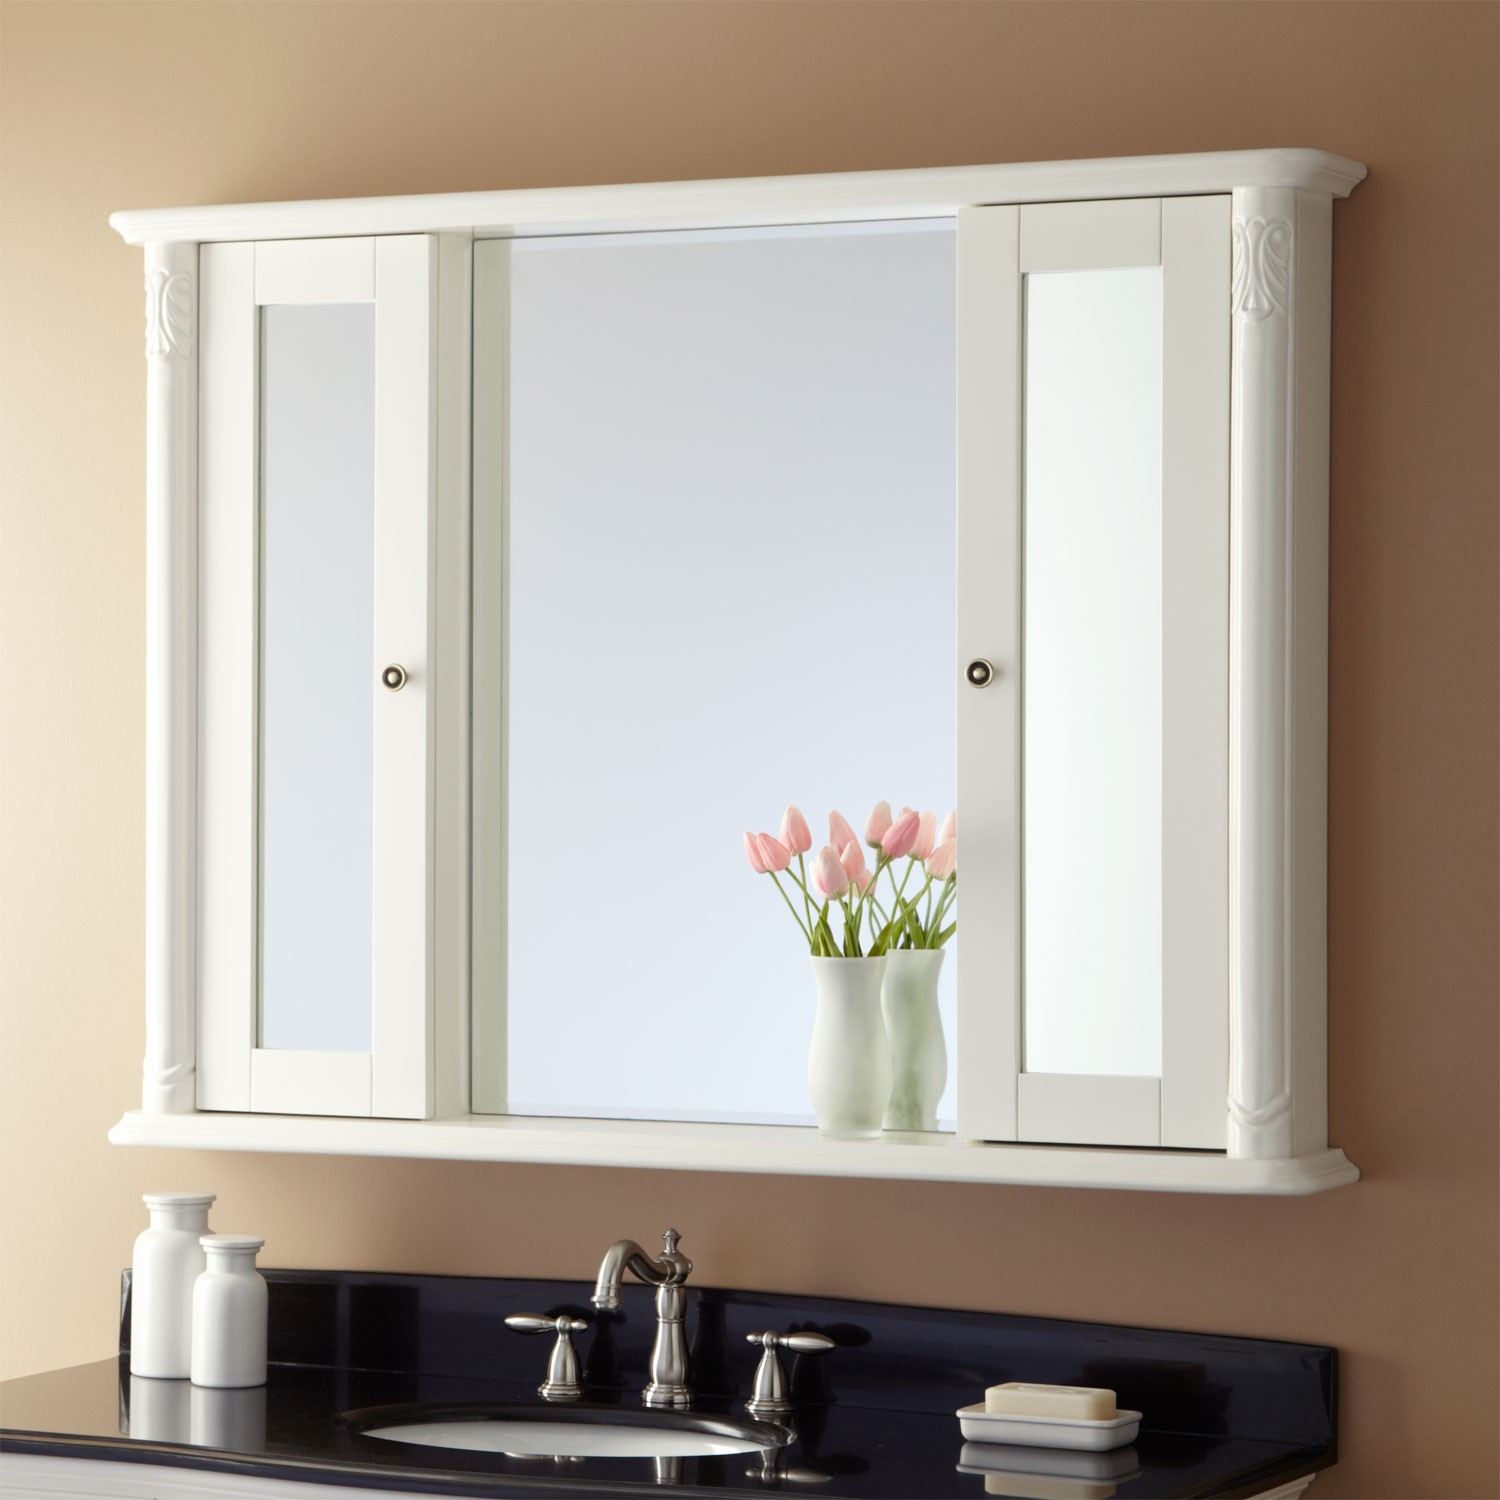 Bathroom Lowes Medicine Cabinets With Mirror White Wall With Lamp